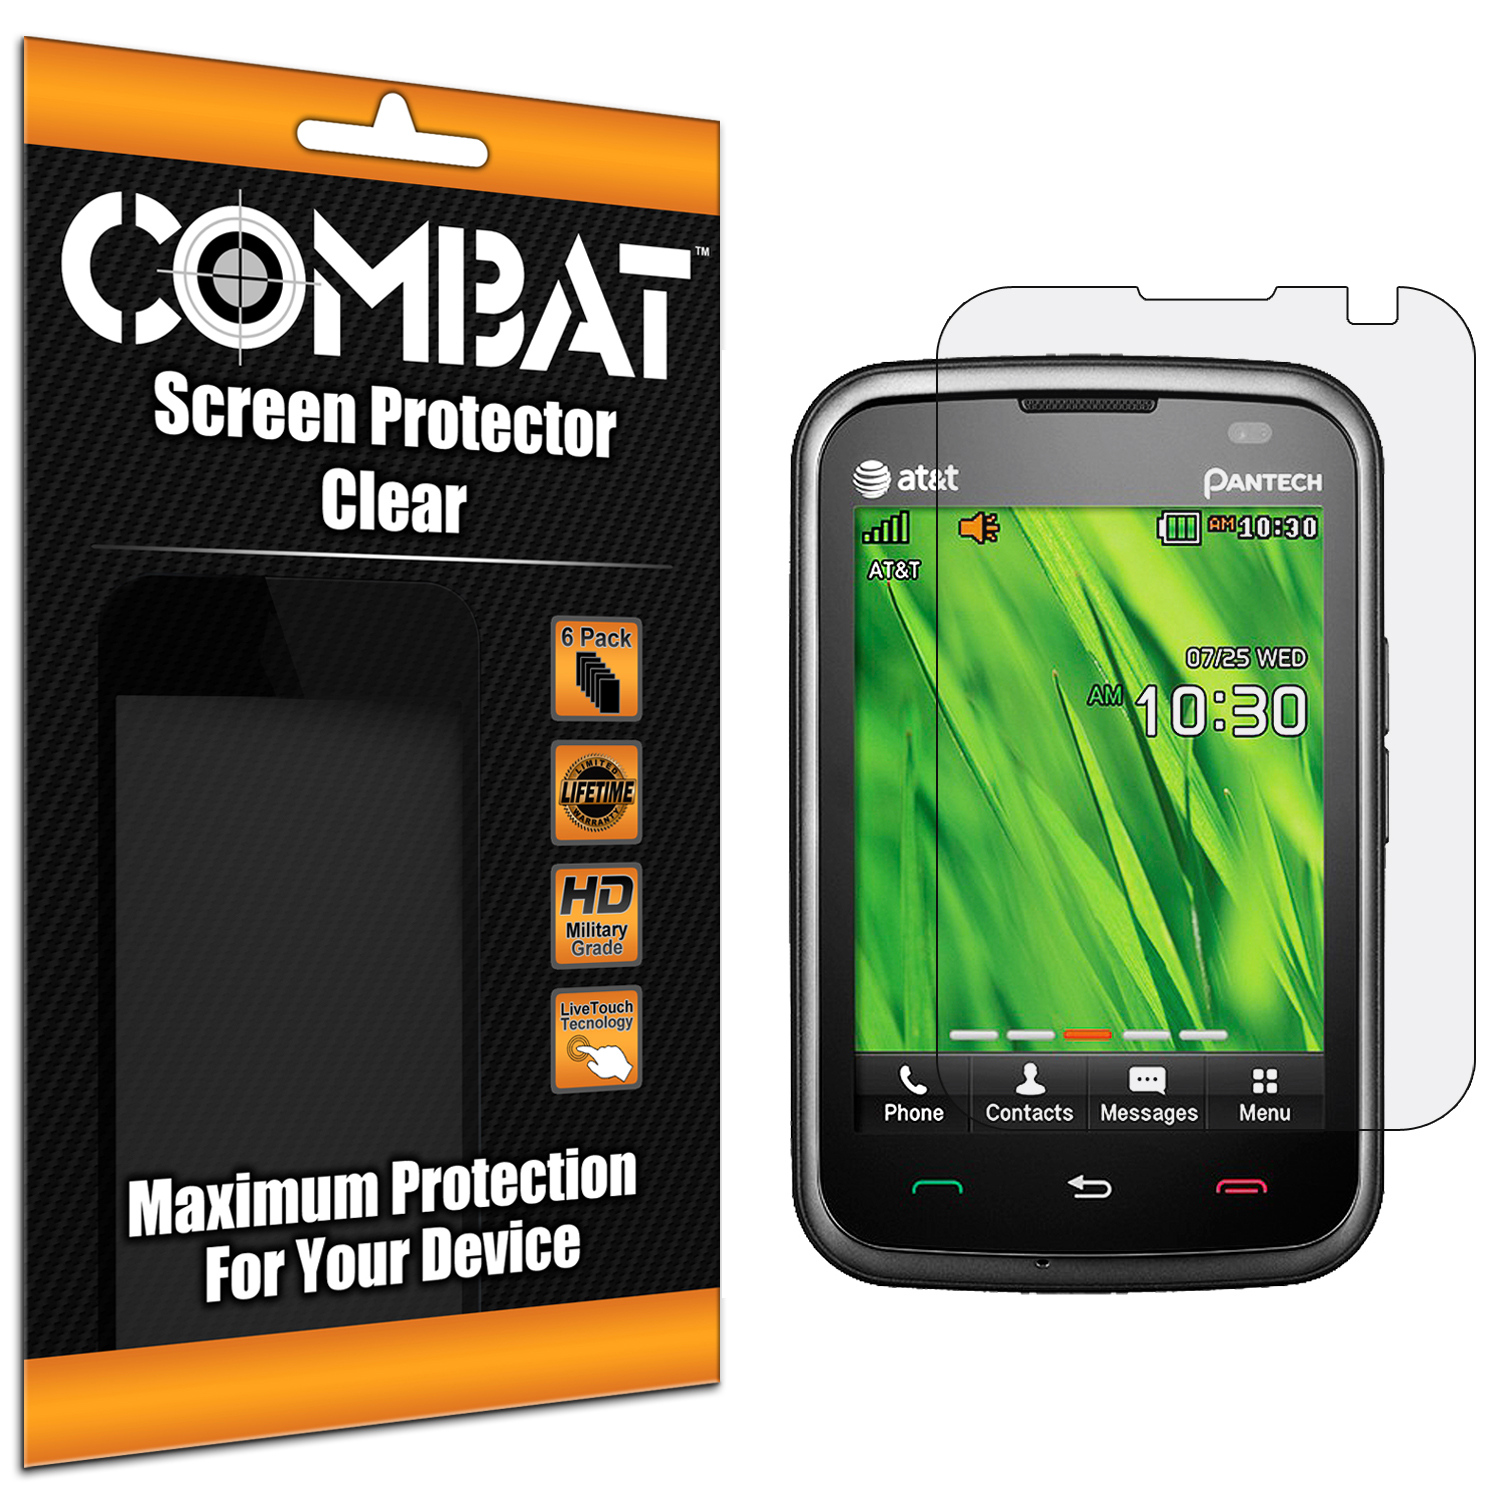 Pantech Renue 6030 Combat 6 Pack HD Clear Screen Protector